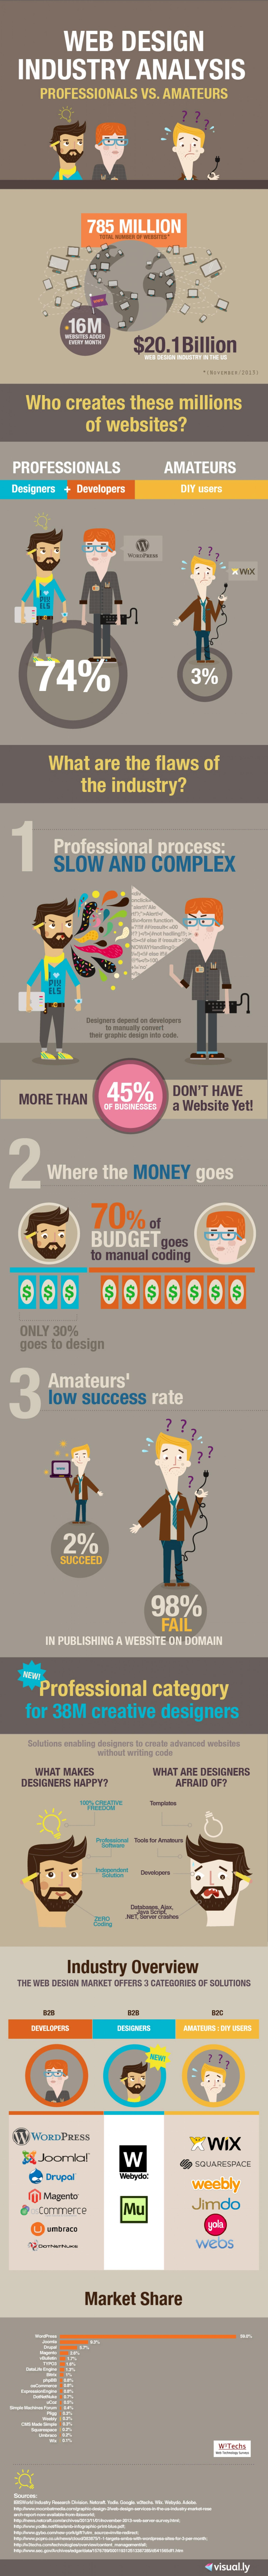 Web Design Industry Analysis [Infographic]